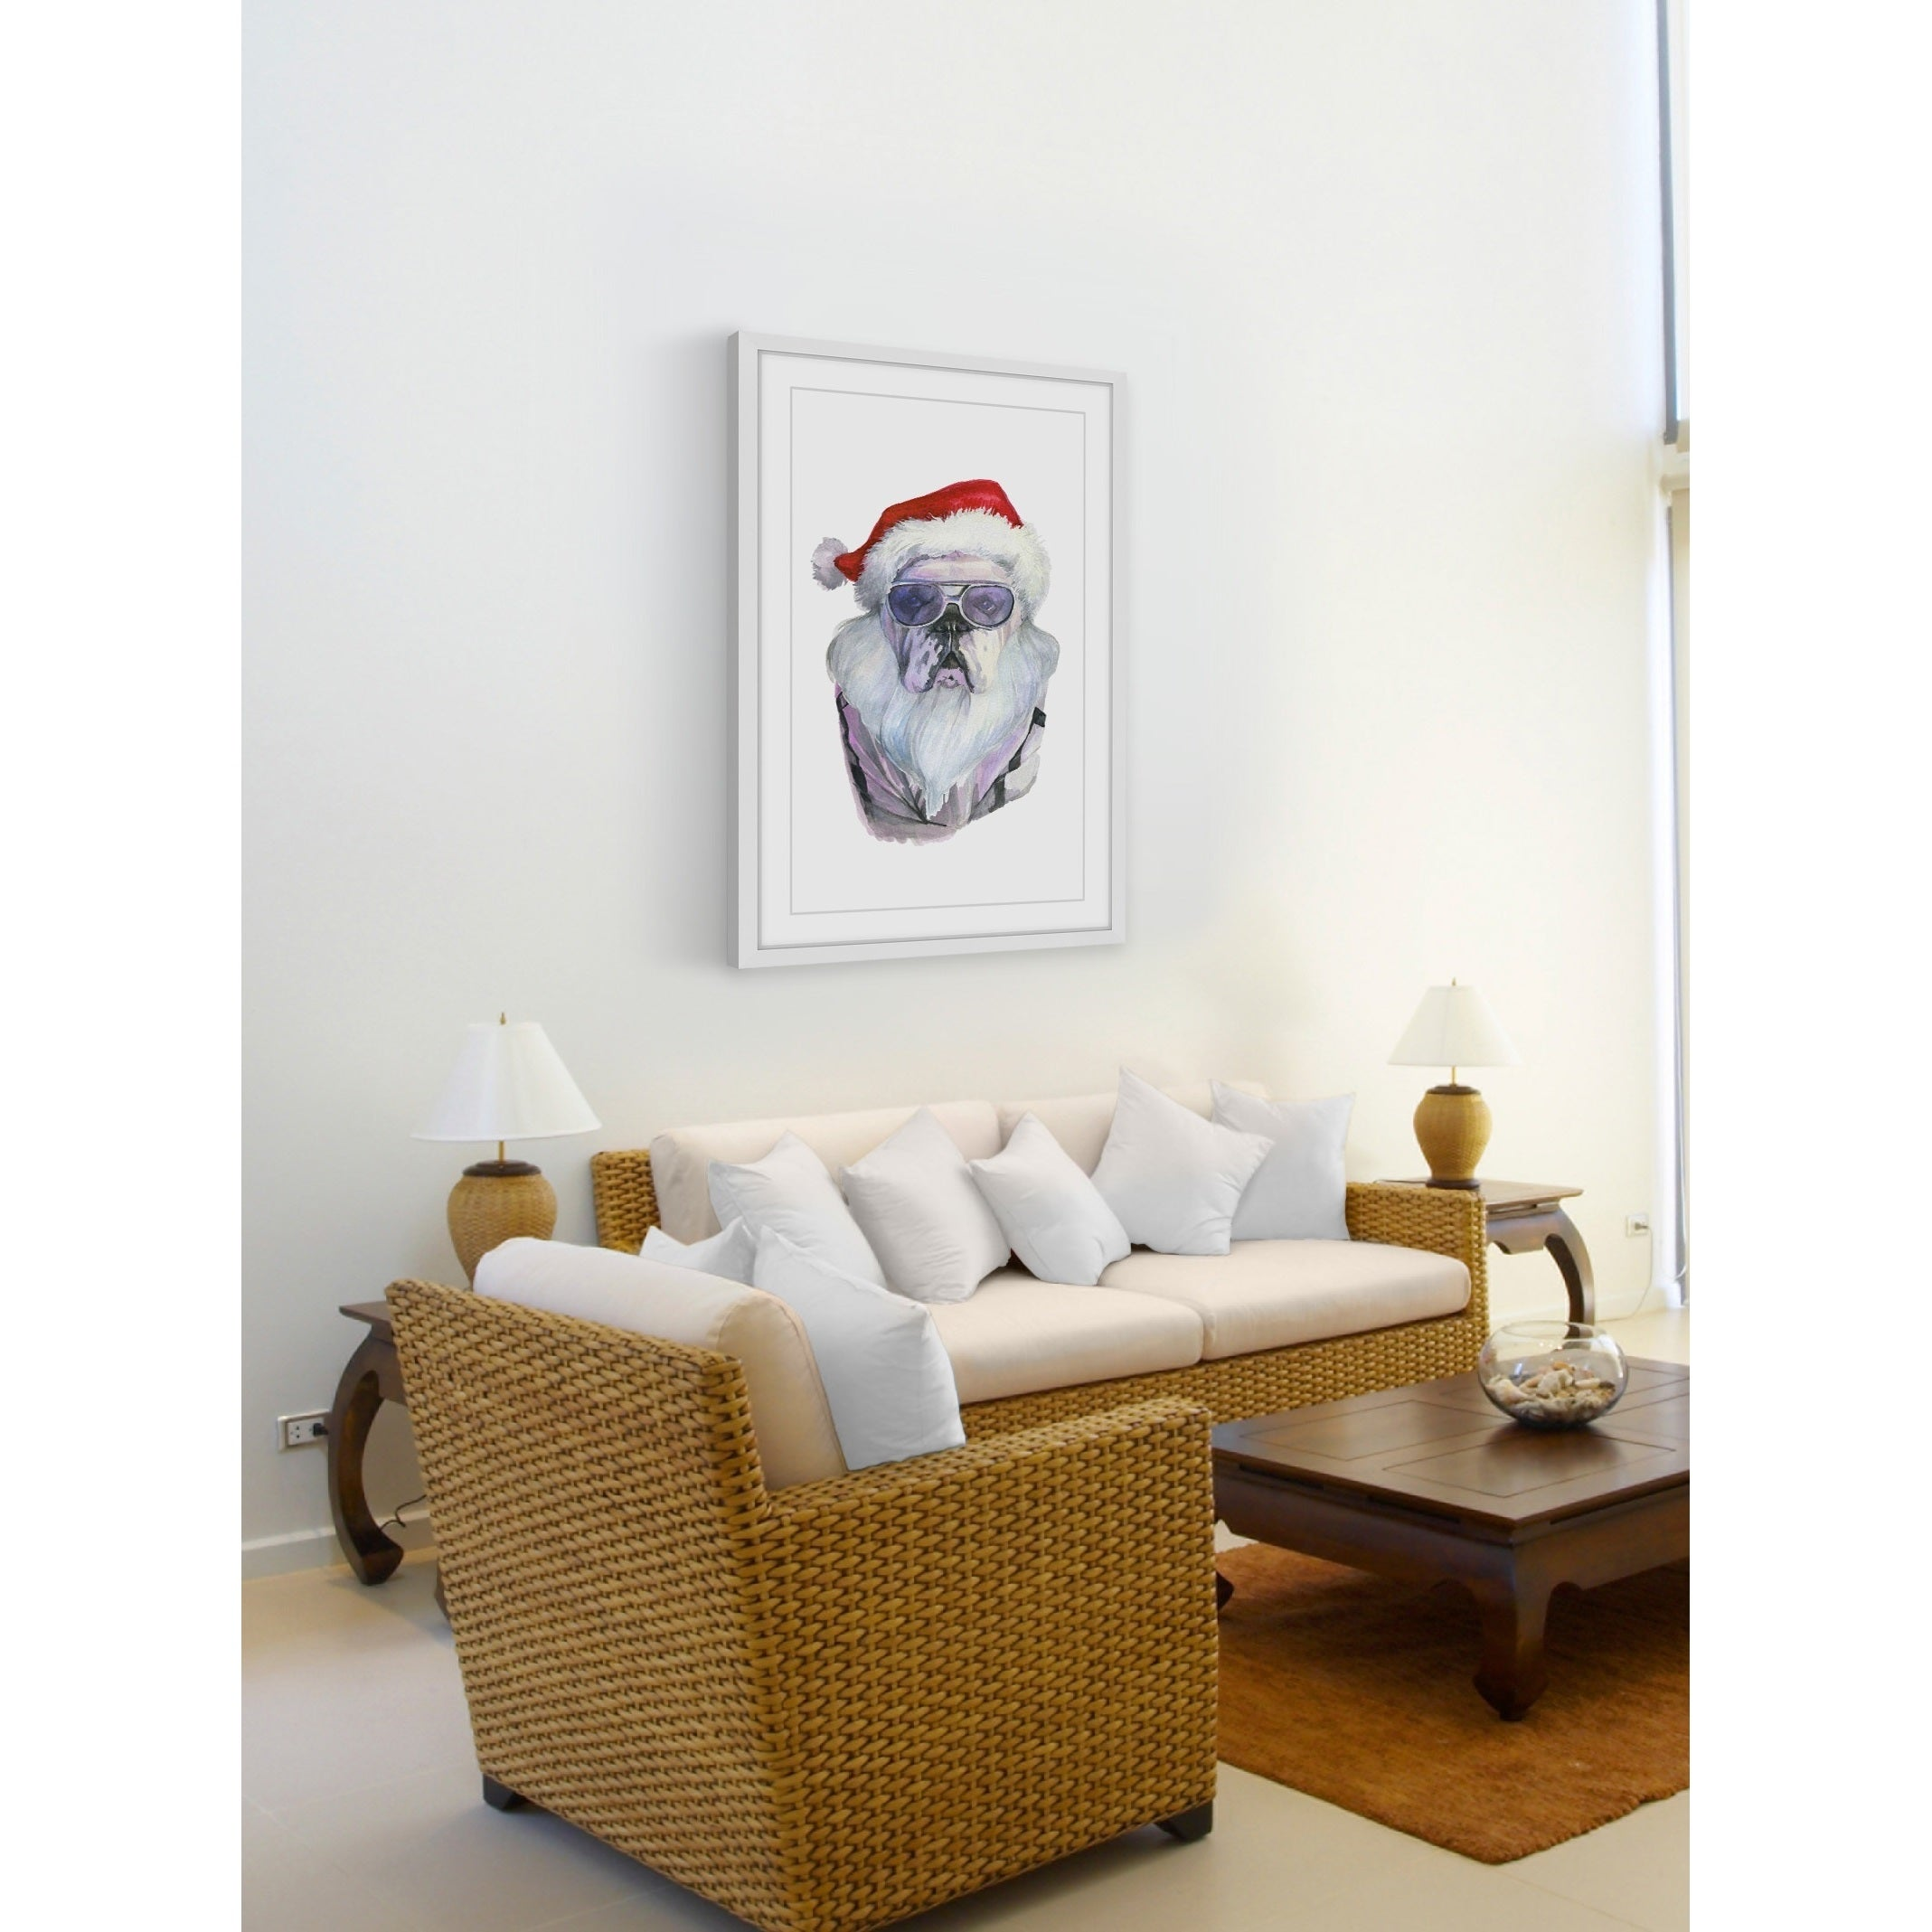 U0027Papa Noelu0027s Comingu0027 Framed Painting Print   Free Shipping Today    Overstock   23101503